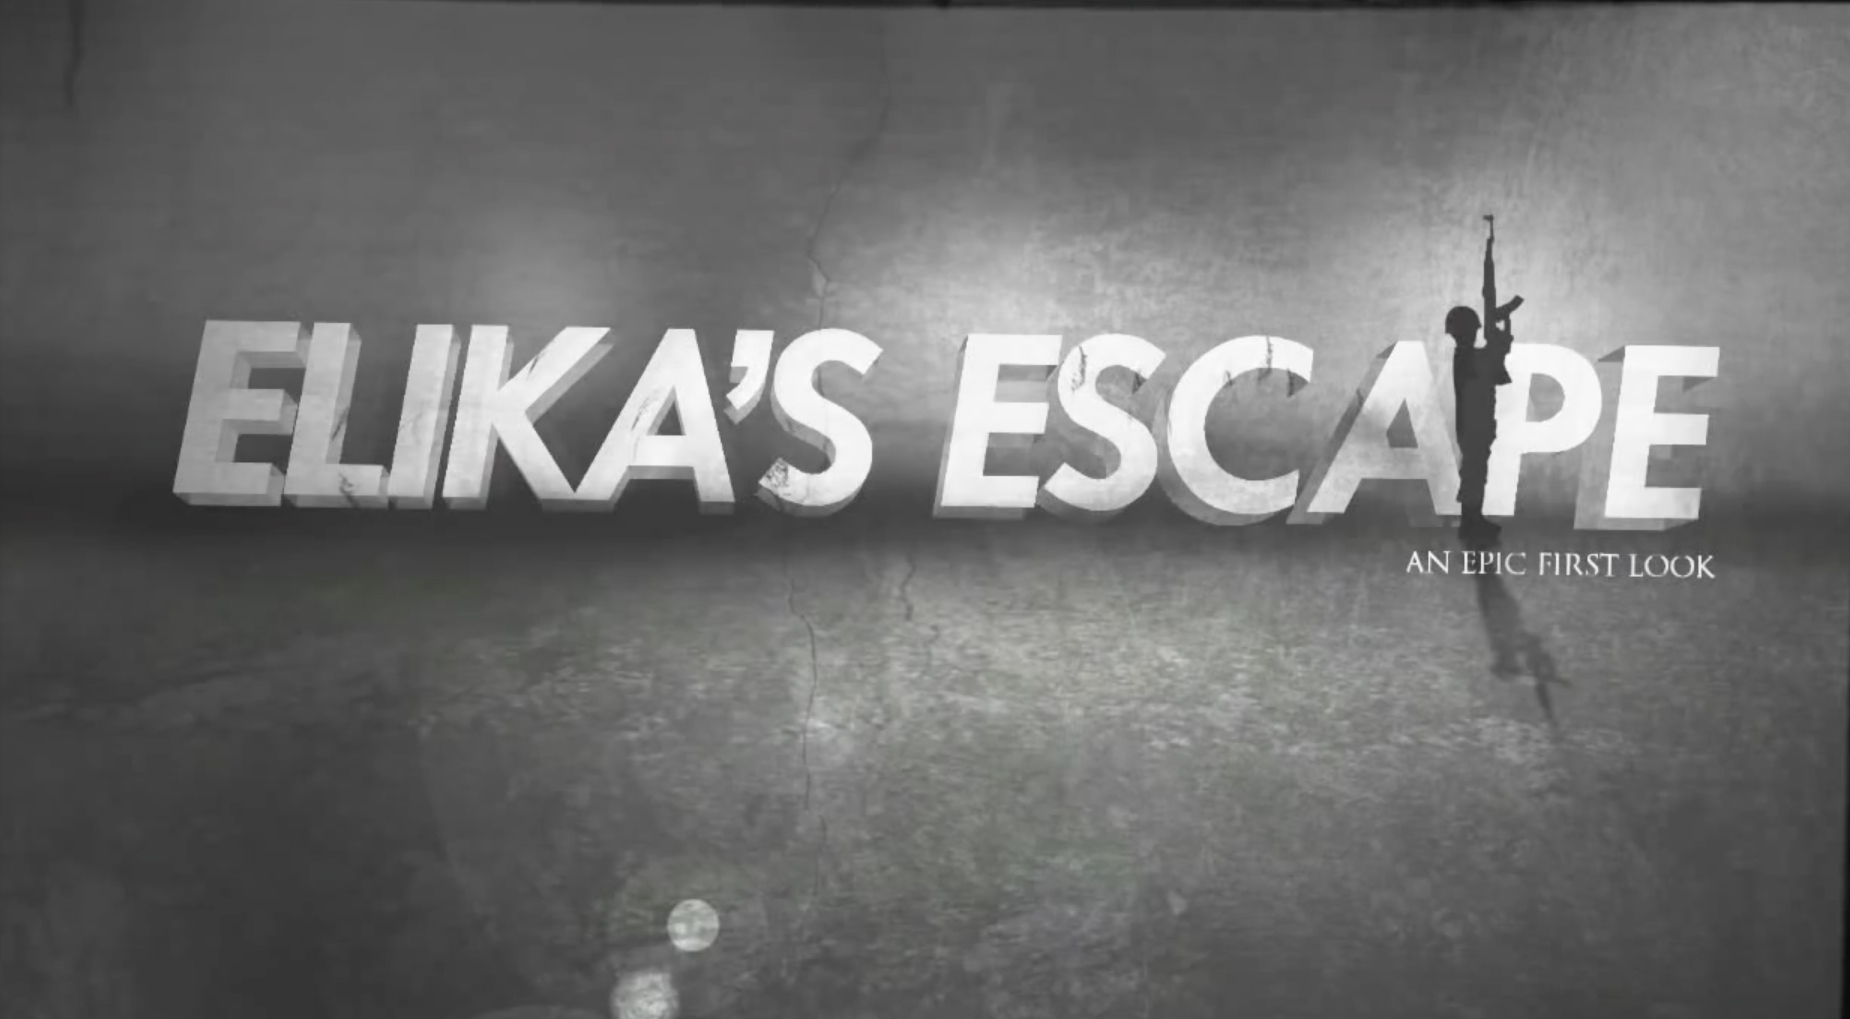 unicef_elikas_escape